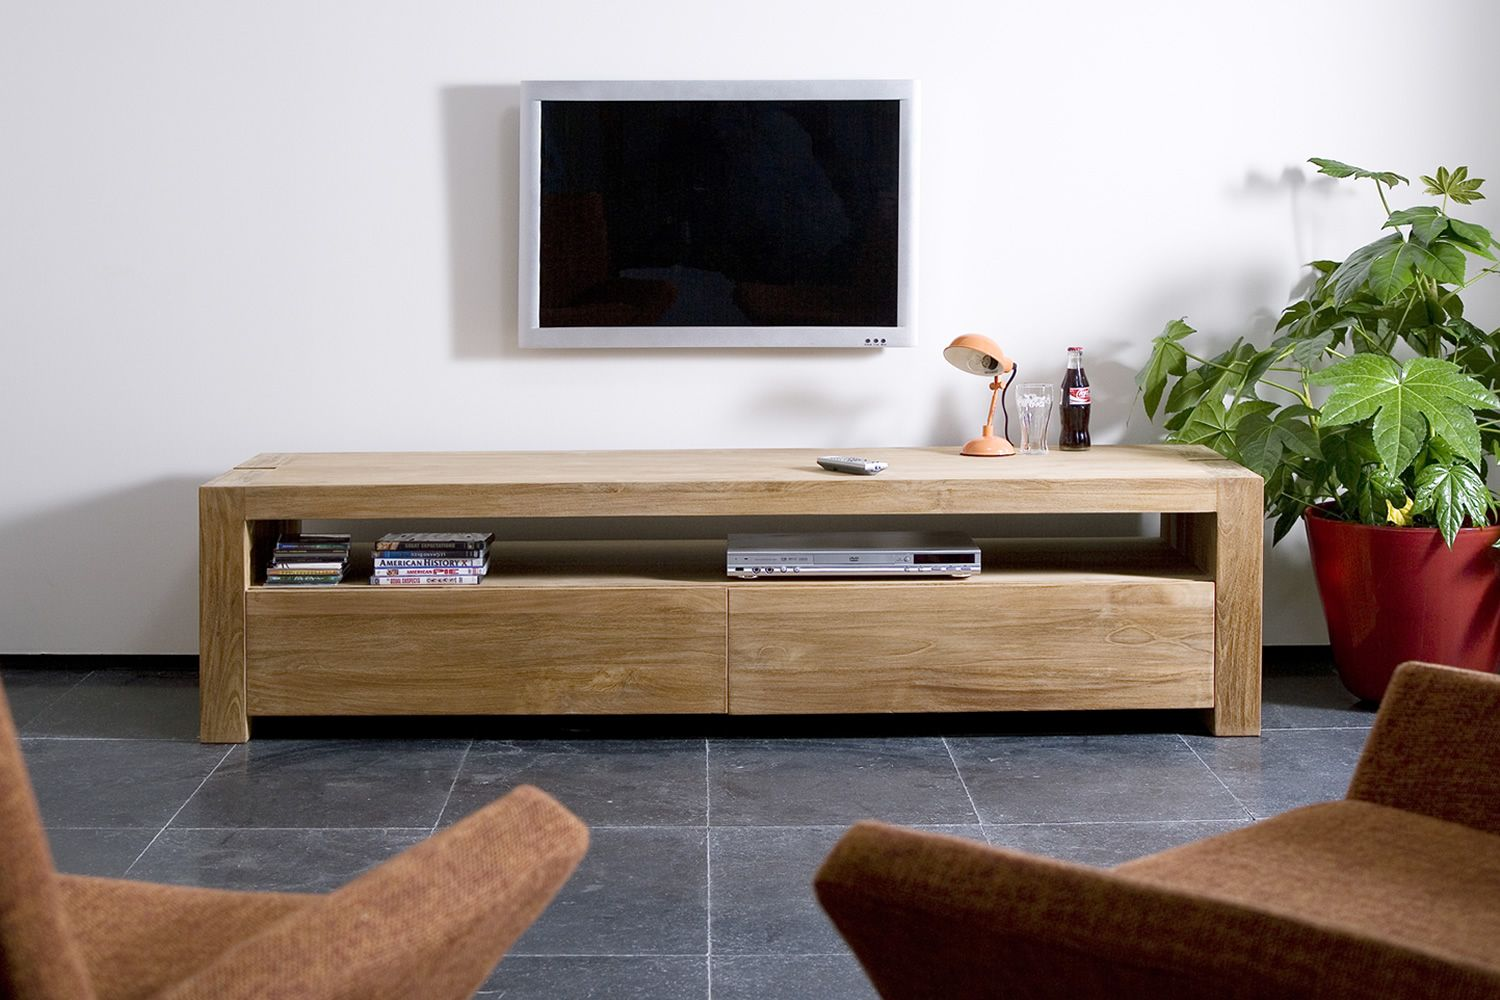 Double tv mueble para tv ethnicraft de madera con cajones for Mesa para tv con cajones